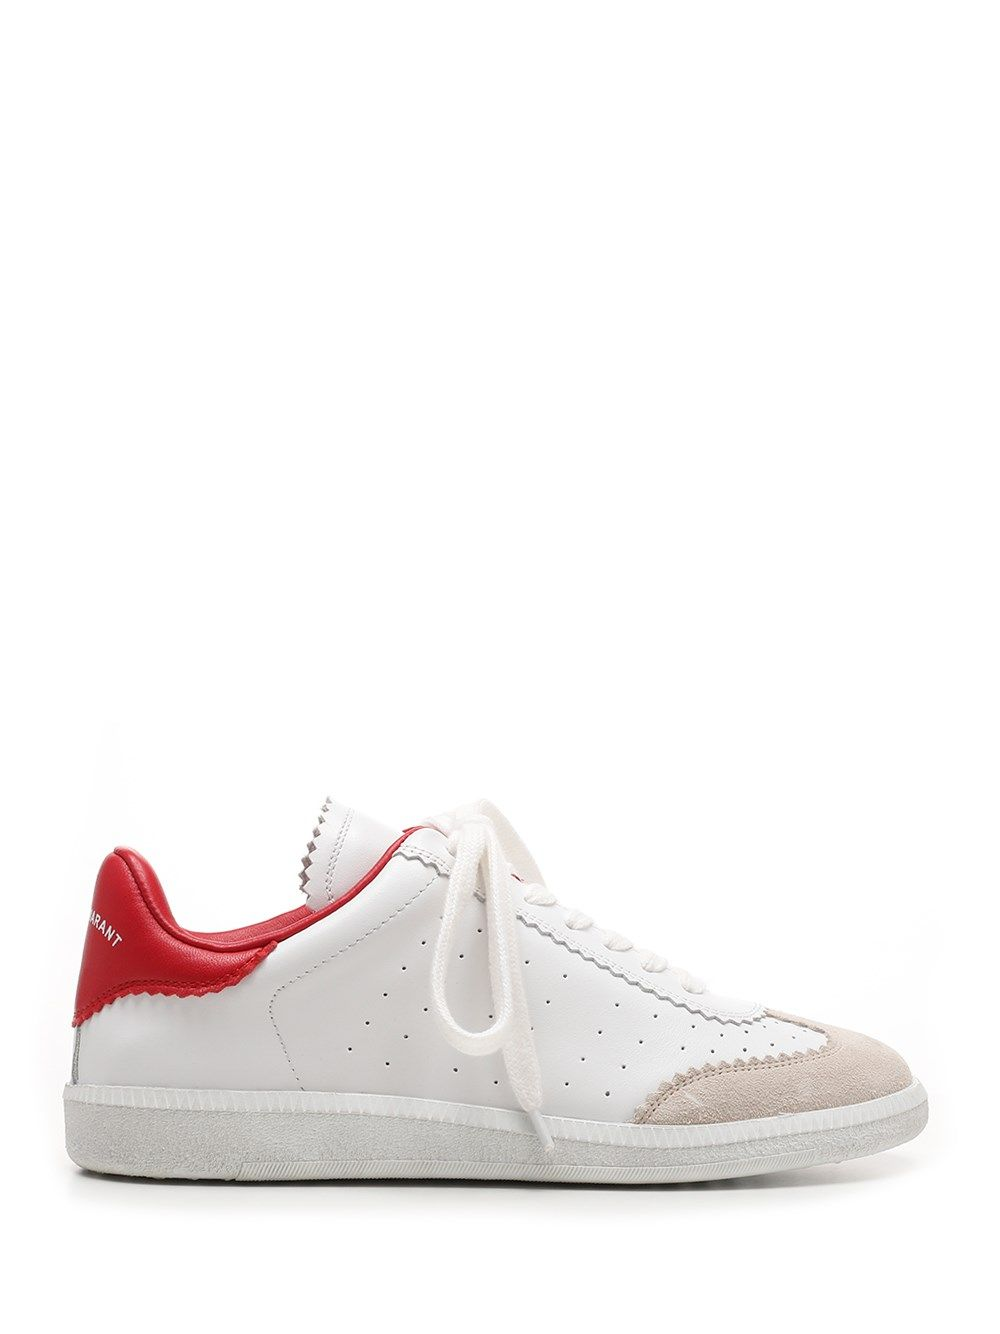 Isabel Marant Leathers ISABEL MARANT WOMEN'S BK002921P041S70RD WHITE OTHER MATERIALS SNEAKERS